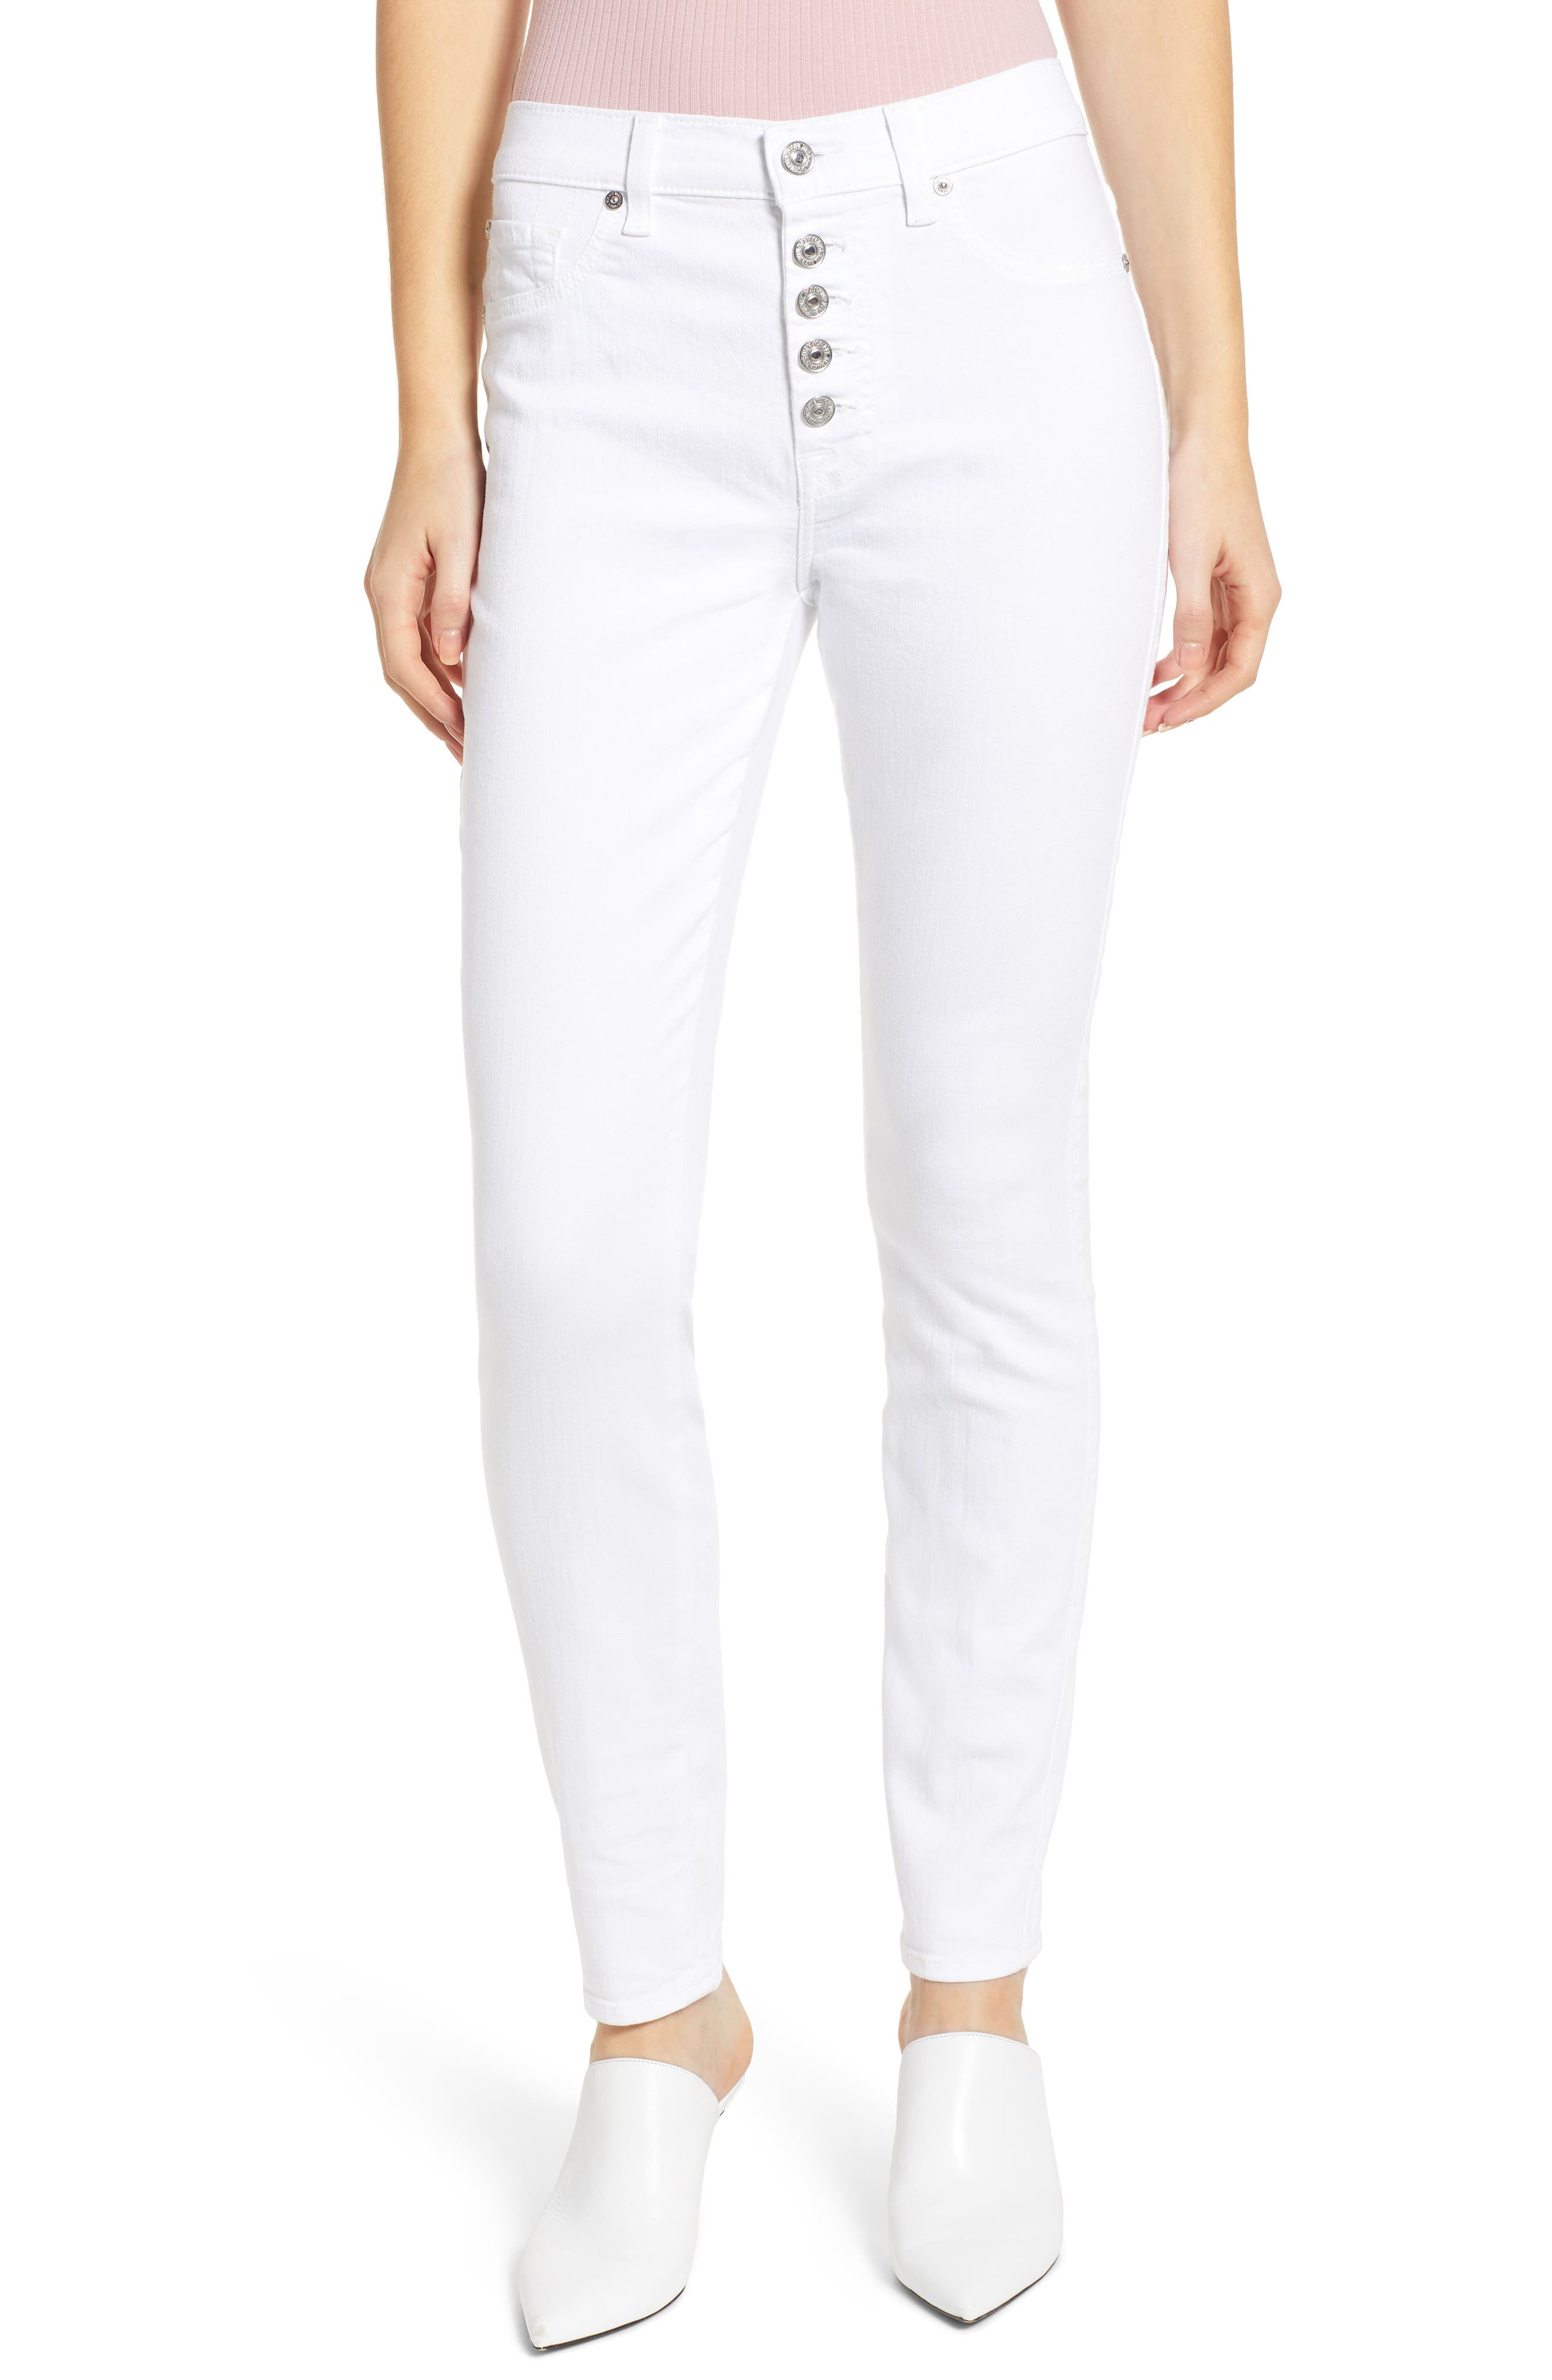 7 FOR ALL MANKIND<SUP>®</SUP> Button Fly High Waist Ankle Skinny Jeans, Main, color, WHITE RUNWAY DENIM